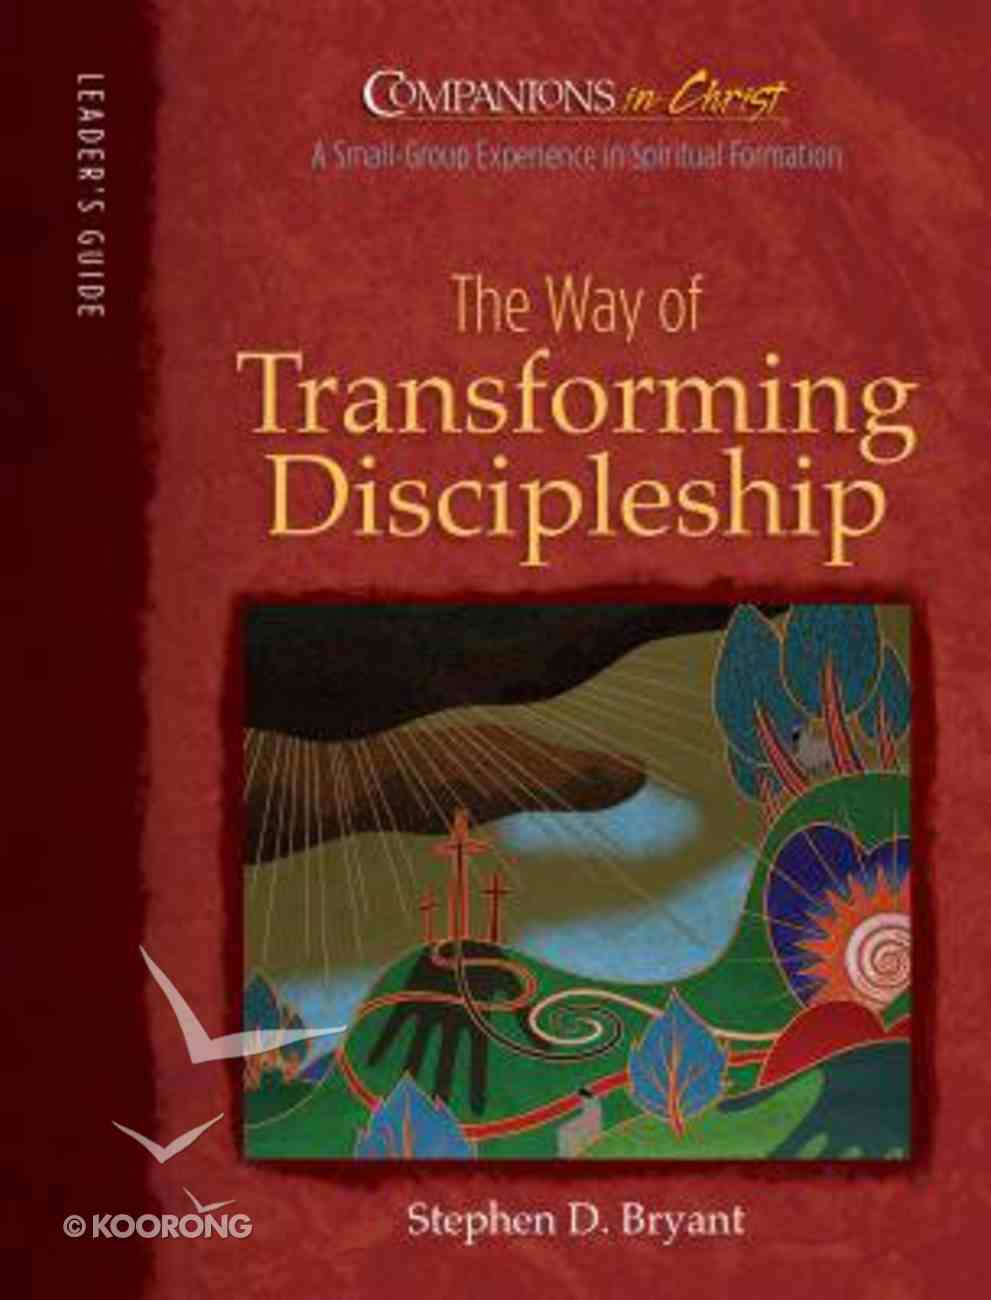 The Way of Transforming Discipleship (Leader Guide) (Companions In Christ Series) Paperback